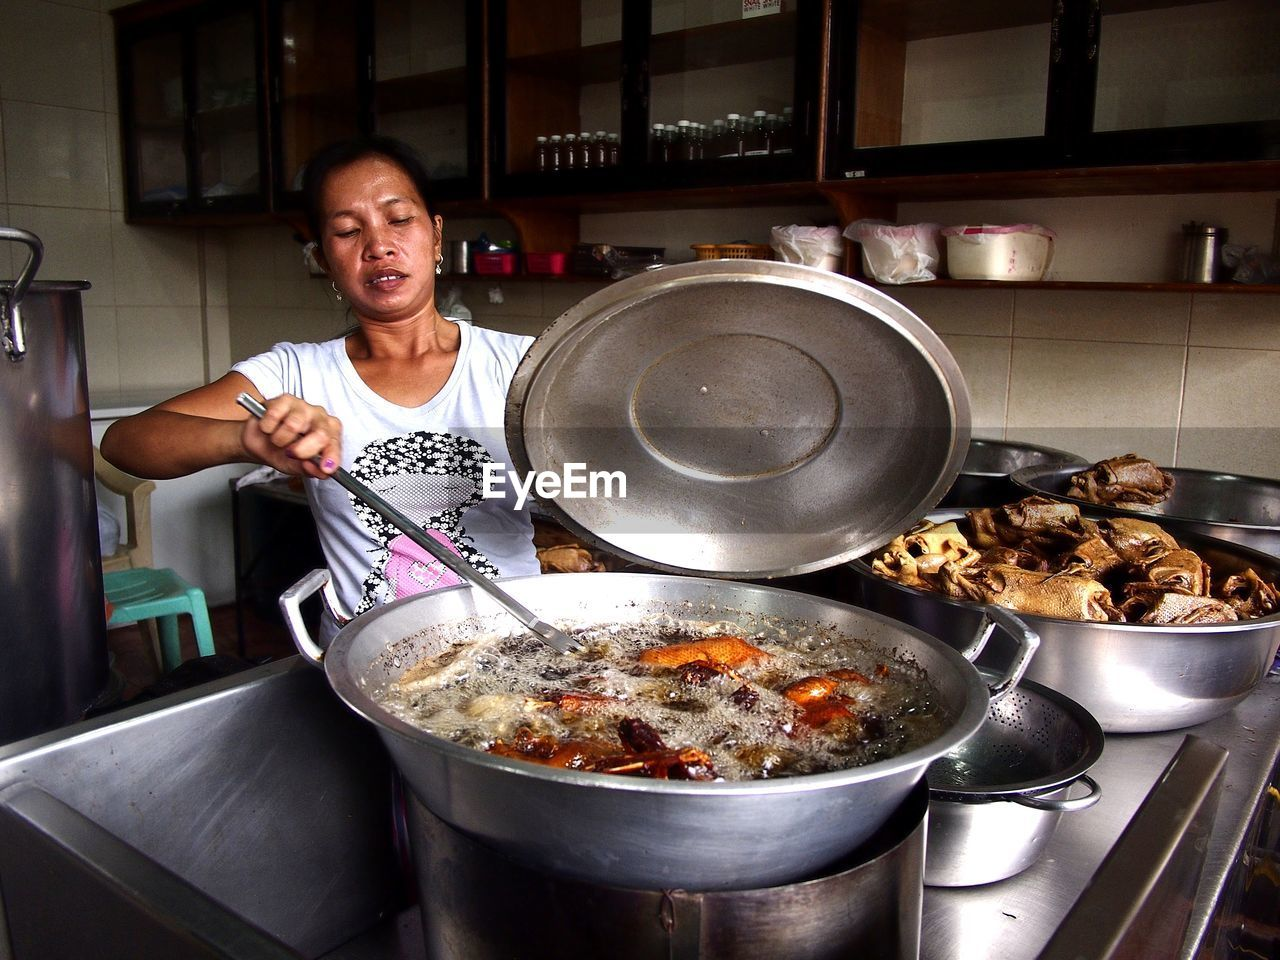 kitchen, food, food and drink, indoors, kitchen utensil, domestic room, one person, domestic kitchen, preparation, household equipment, home, preparing food, holding, stove, standing, real people, appliance, cooking pan, occupation, chef